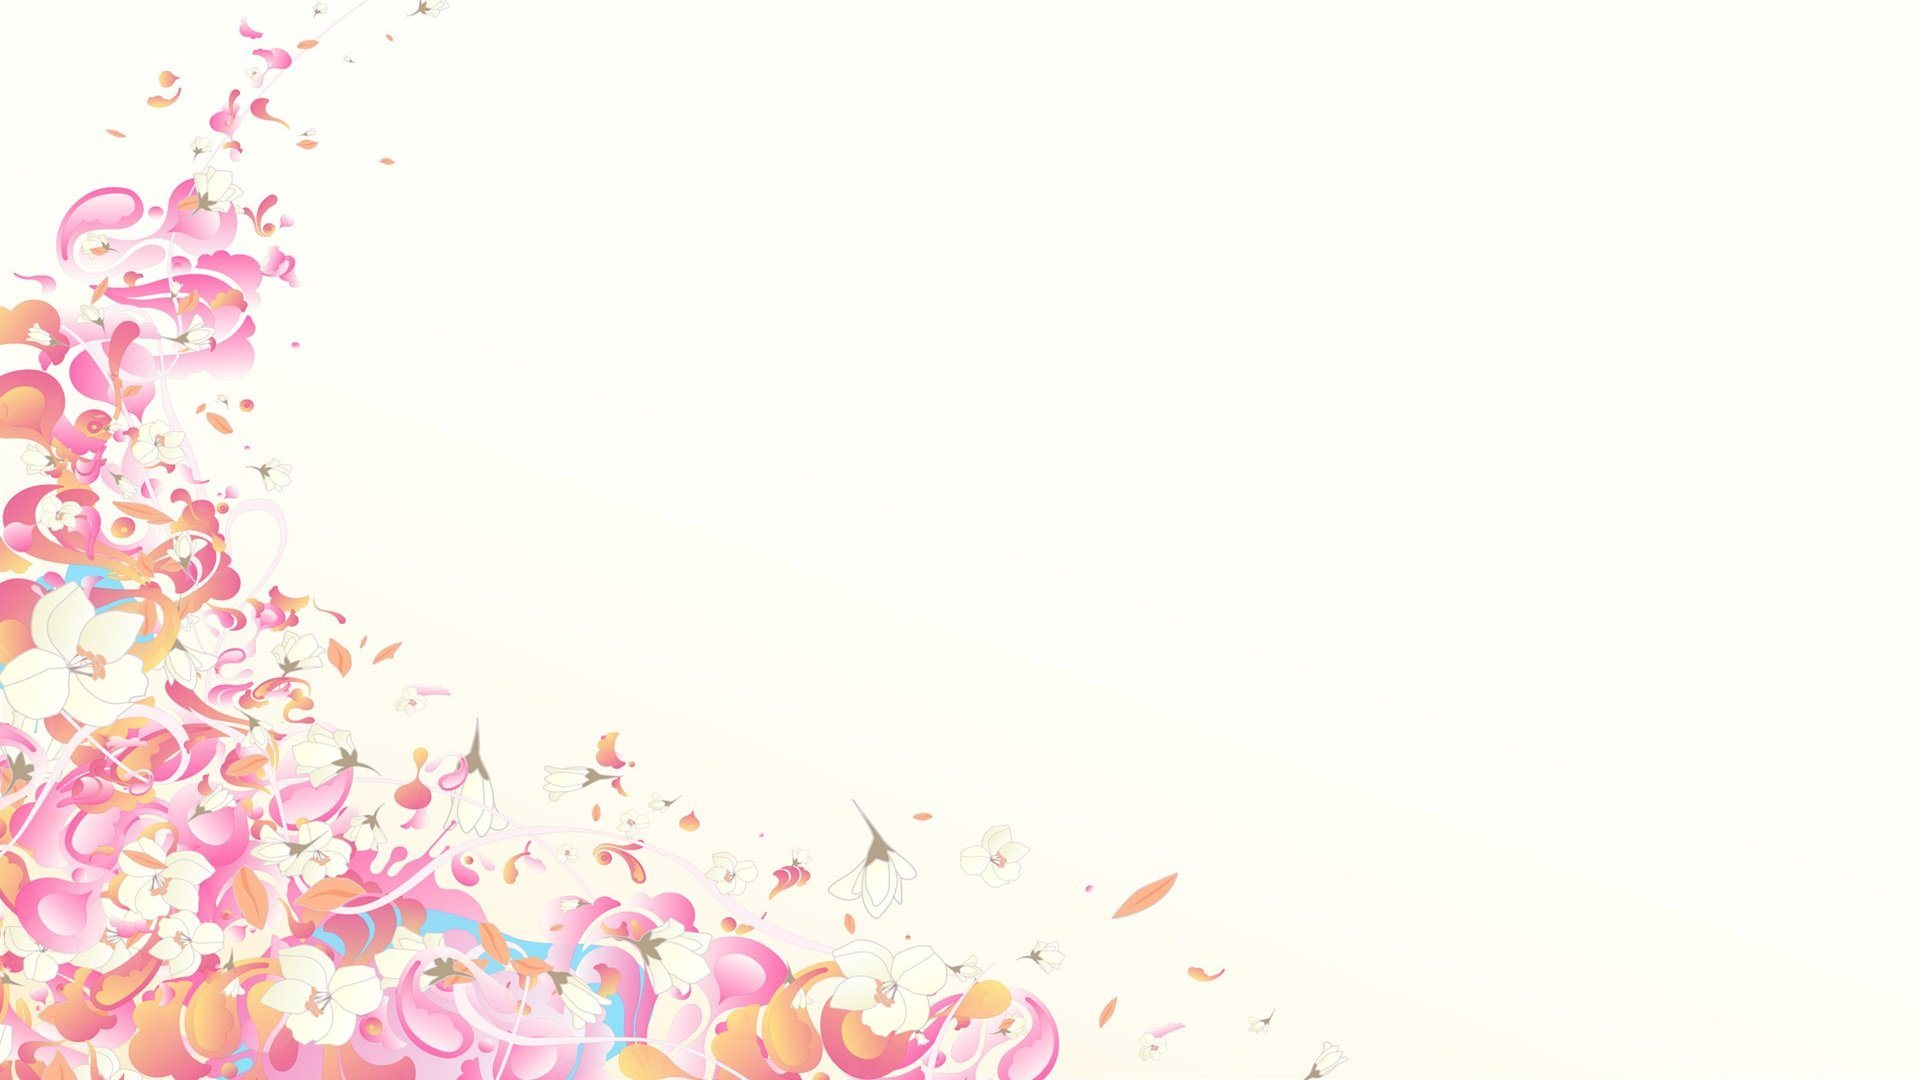 Hd wallpaper white background - Pink Flowers Wallpaper White Background Full Hd Abstract High